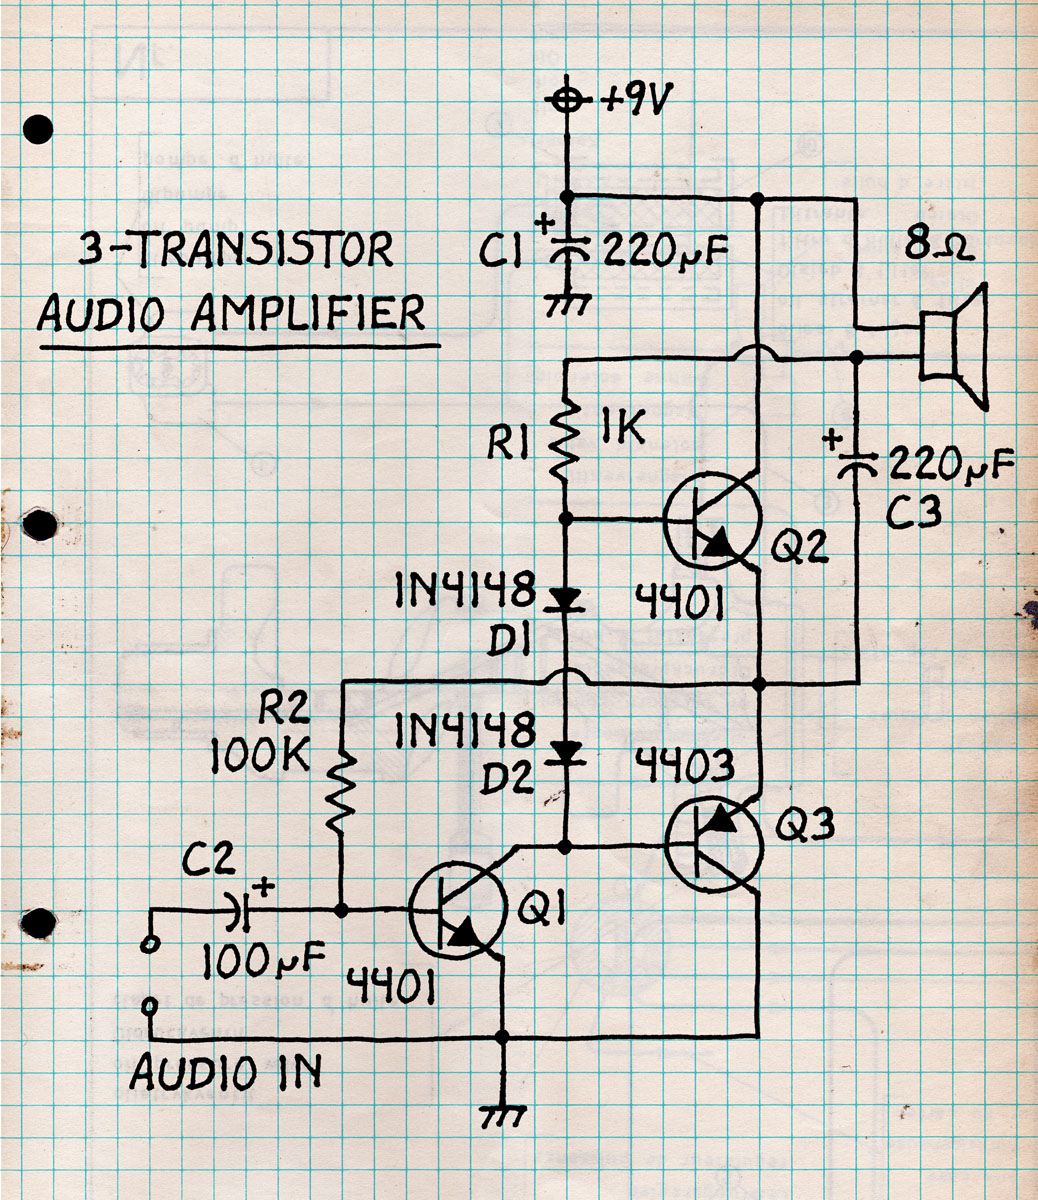 3-Transistor Audio Amplifier